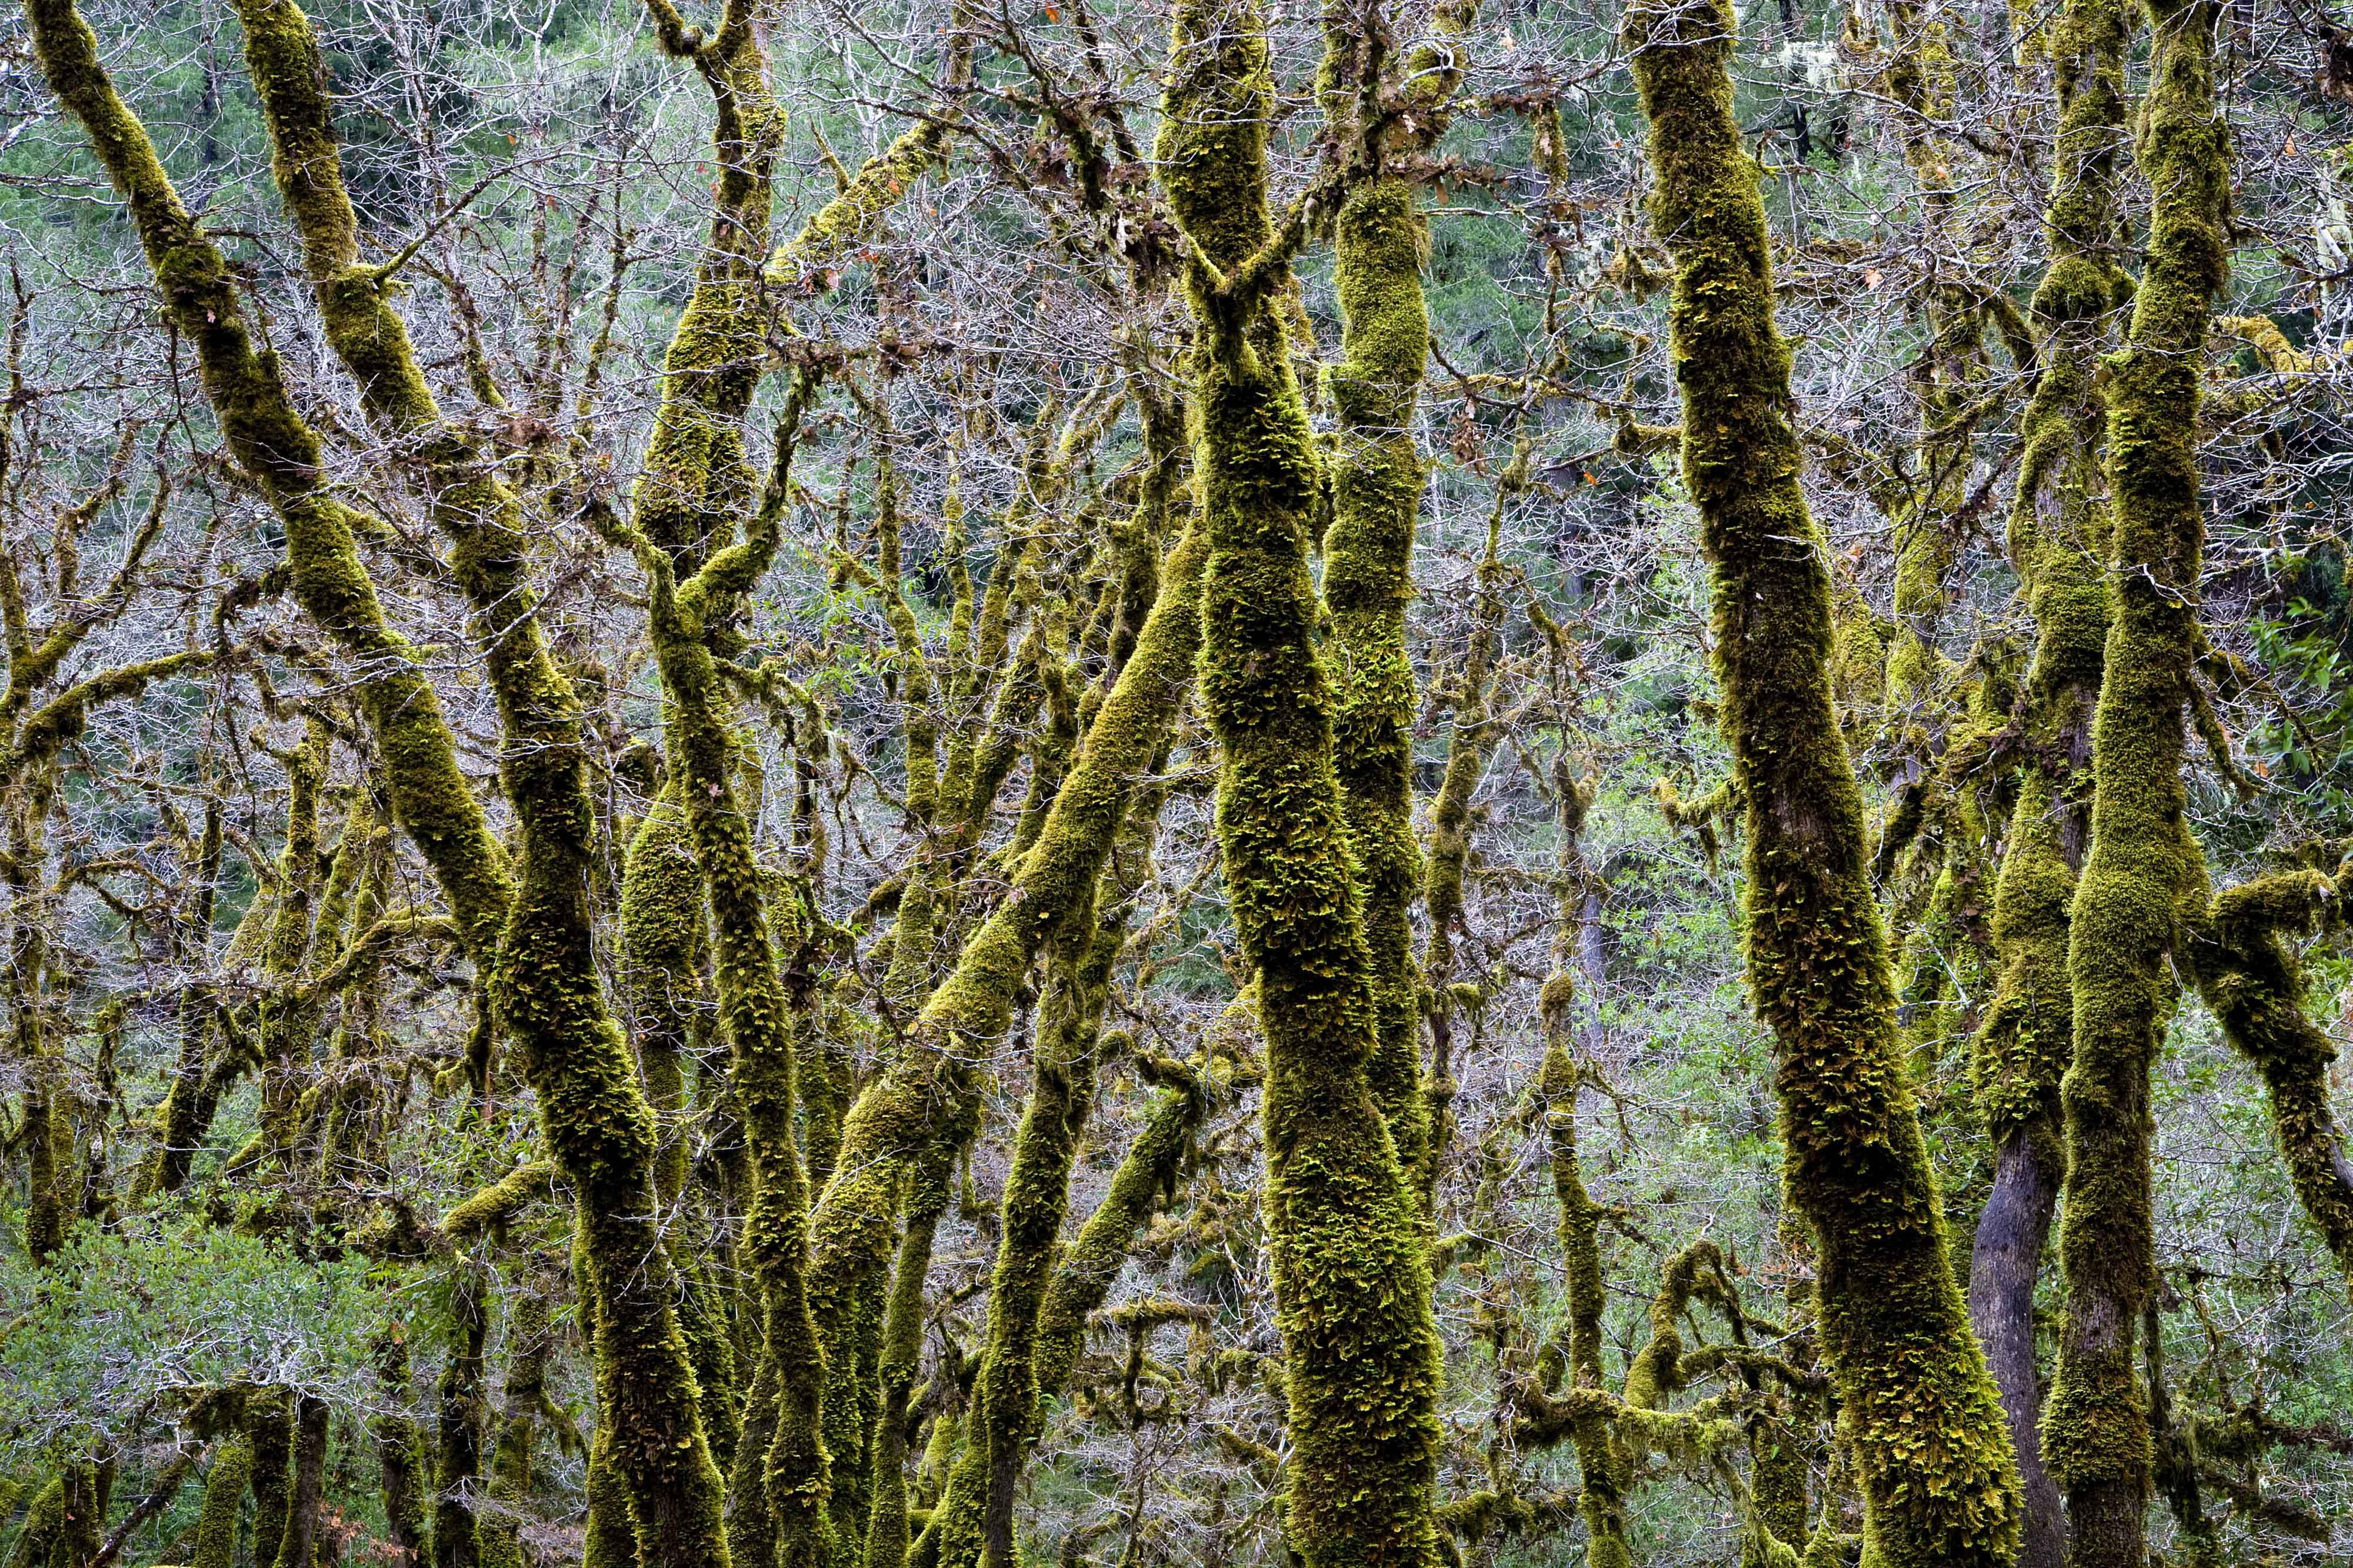 Moss covered branches with douglas fir trees